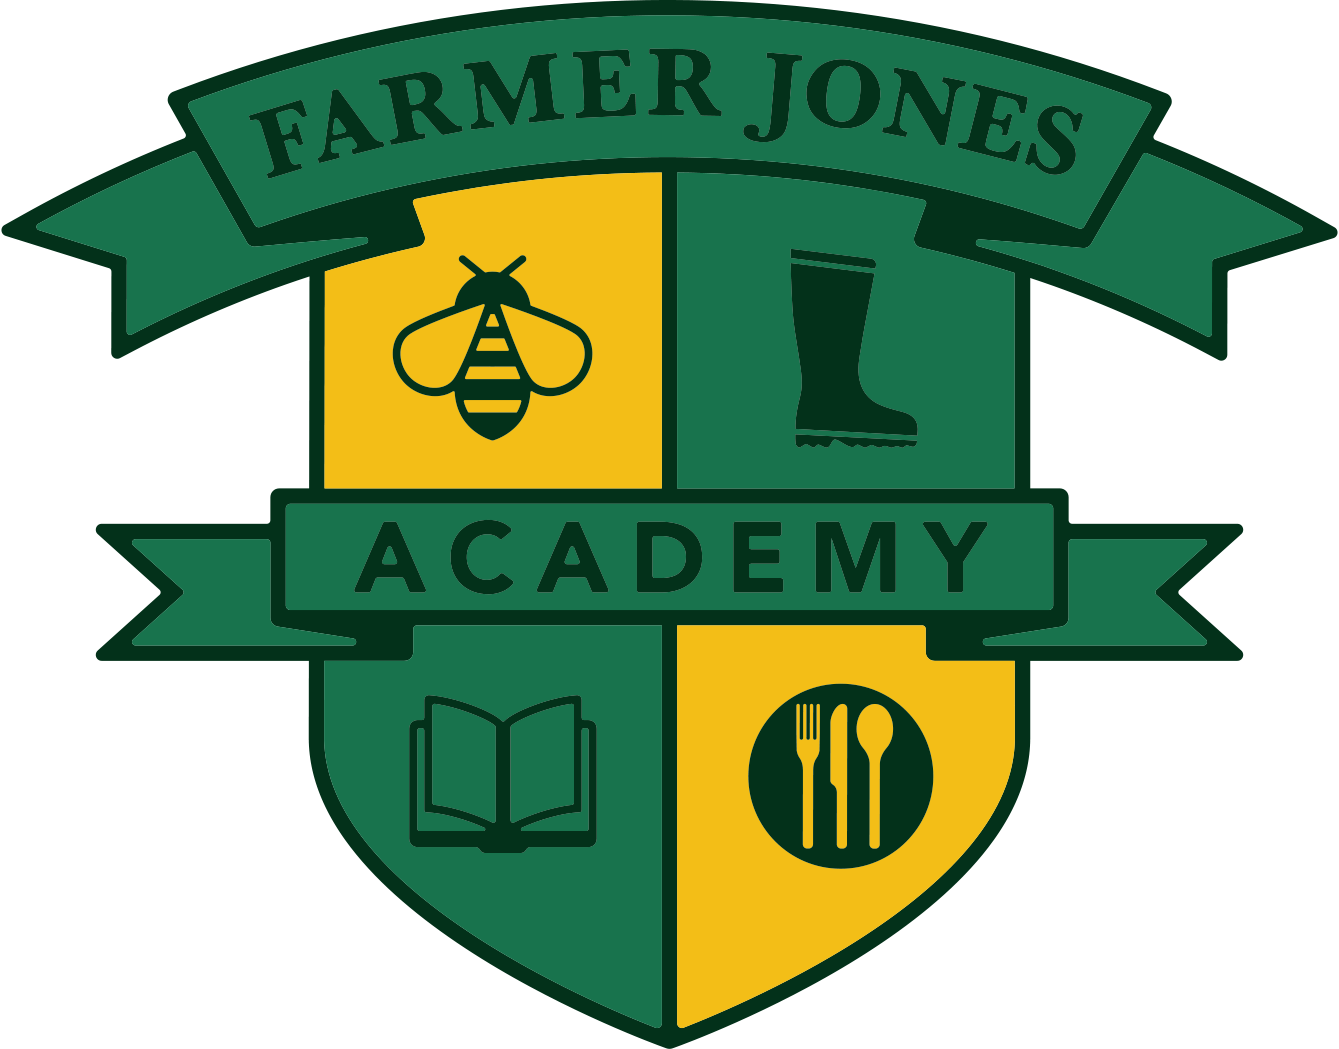 The Farmer Jones Academy logo